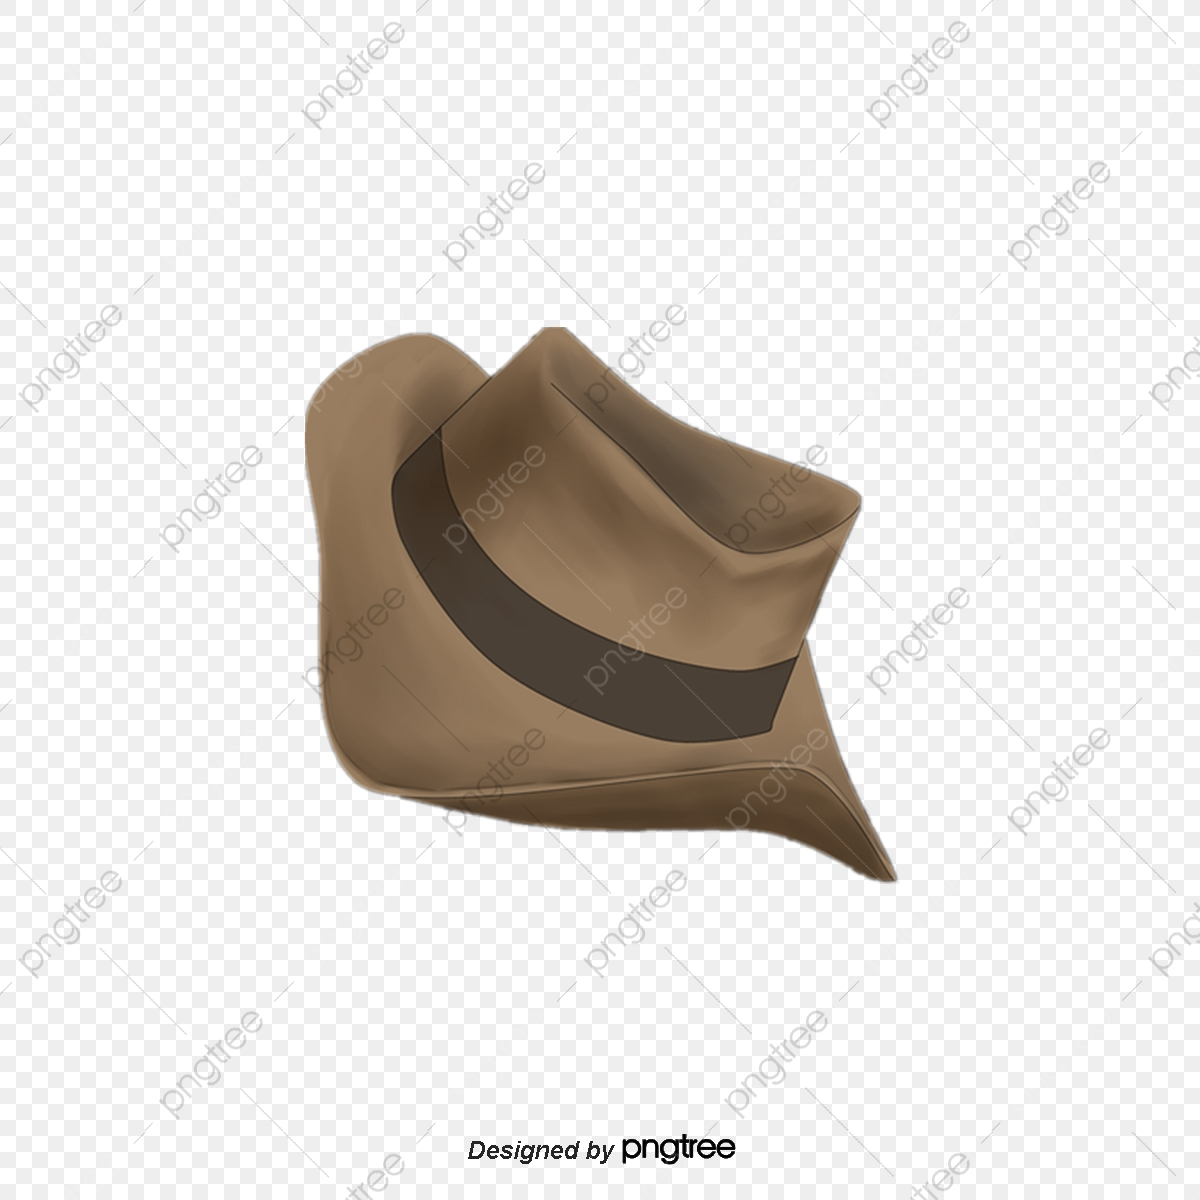 Cowboy Hat Png Images Vector And Psd Files Free Download On Pngtree Tapped out bart simpson homer simpson milhouse van houten, simpsons, purple, hat png. https pngtree com freepng creative cartoon cowboy hat 1783802 html